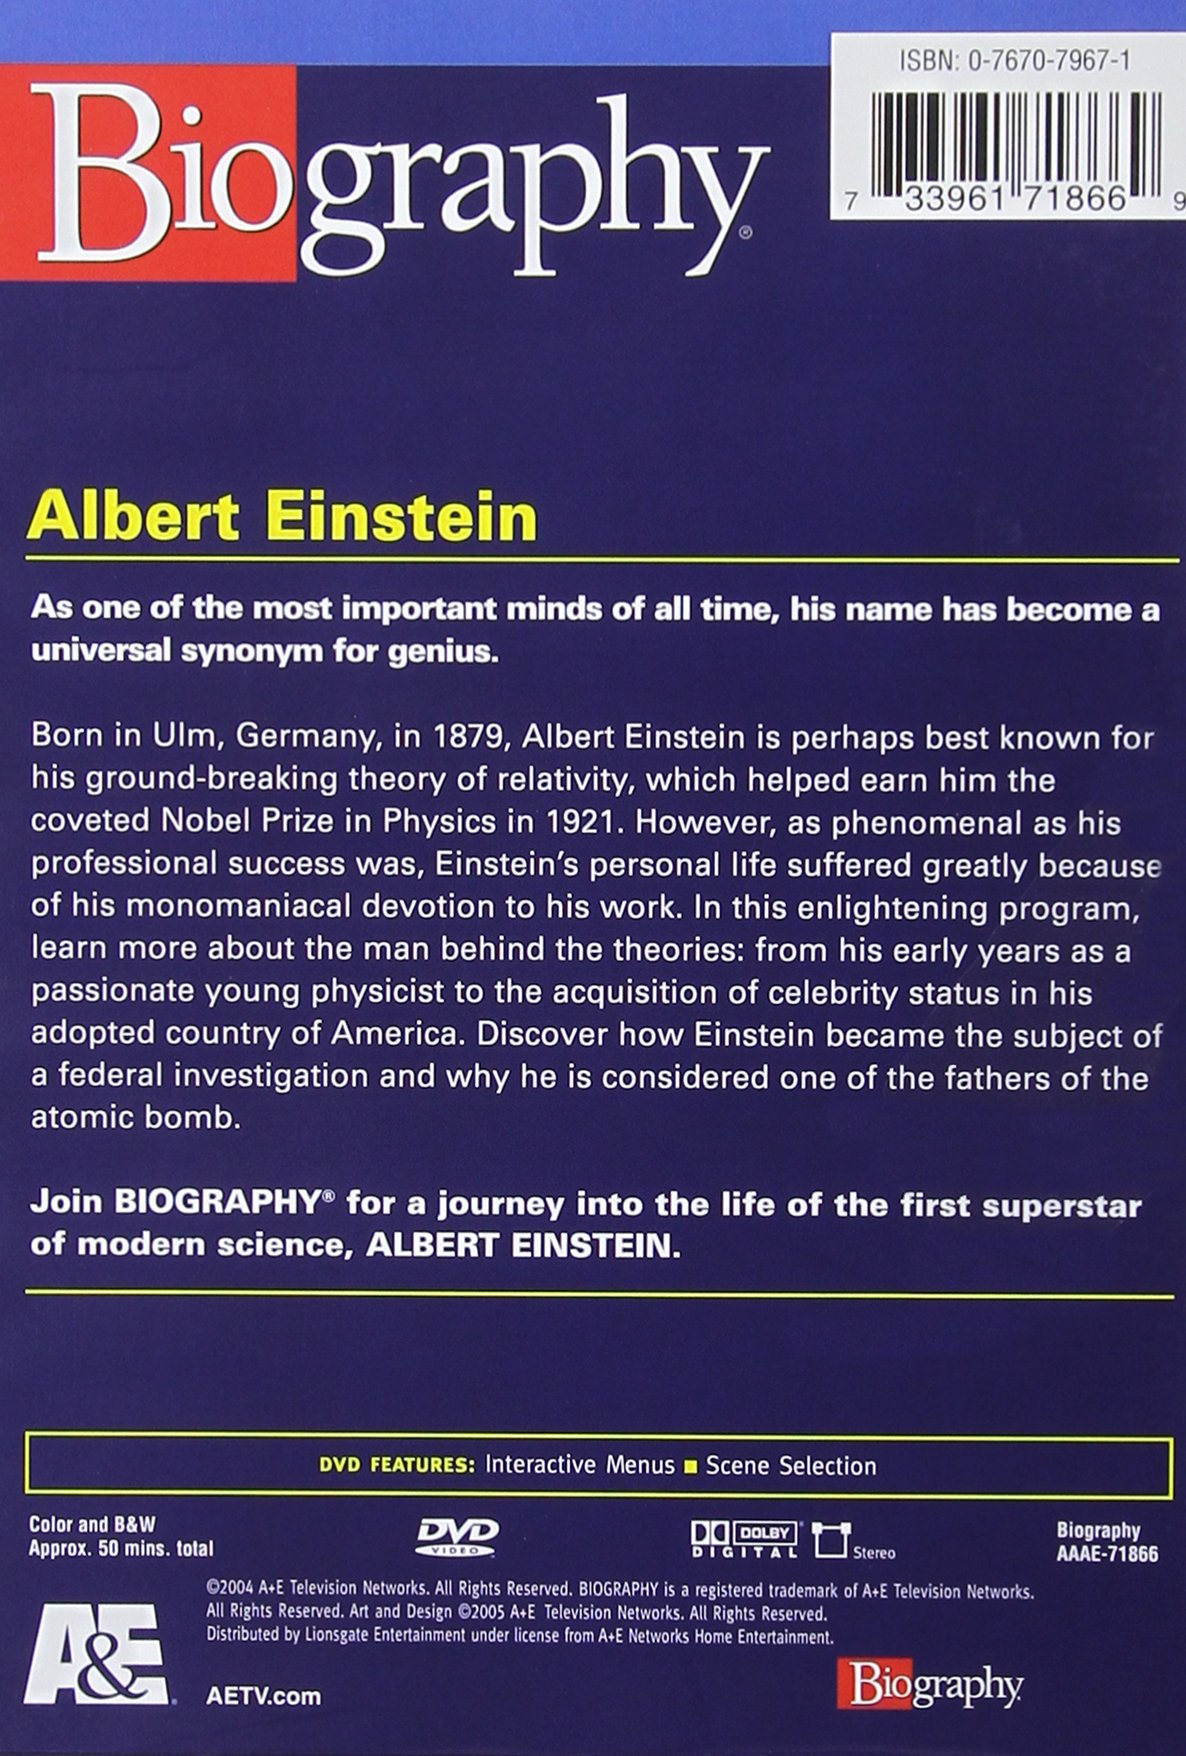 Biography - Albert Einstein (A&E DVD Archives)